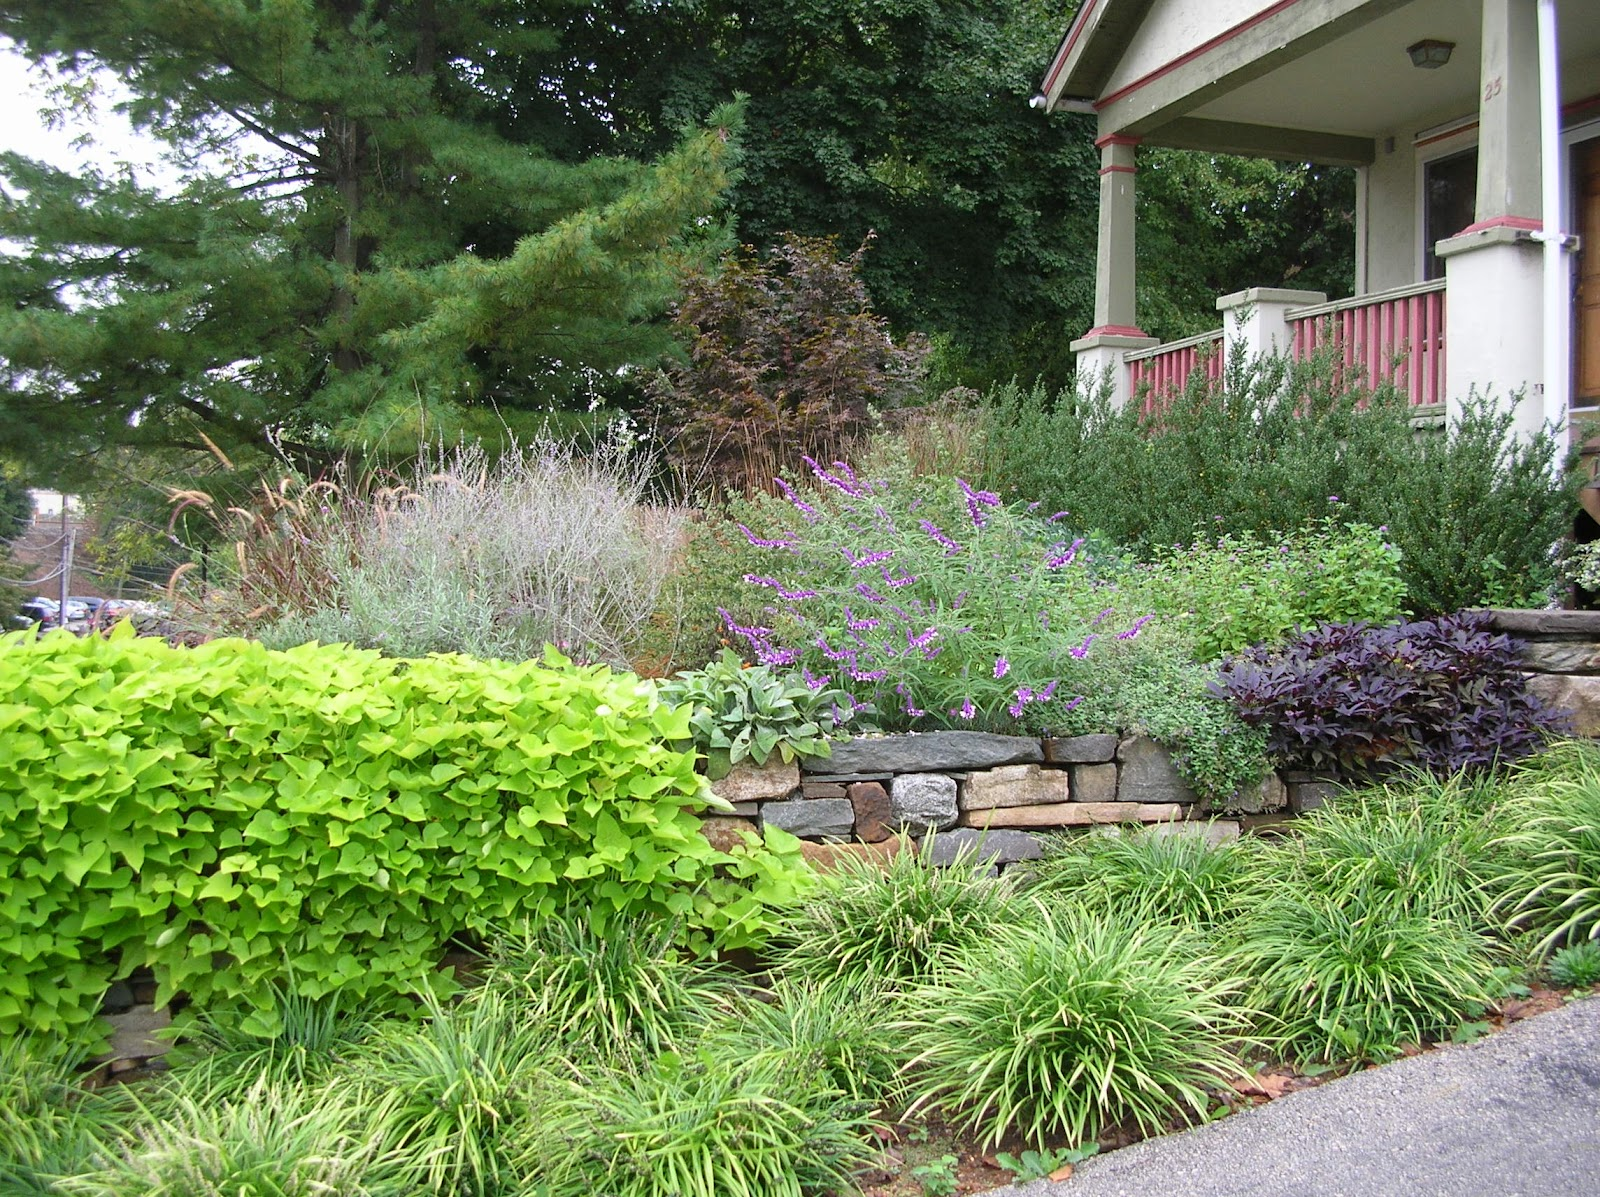 ANTHONY DUFOUR GARDENS: Entry Gardens